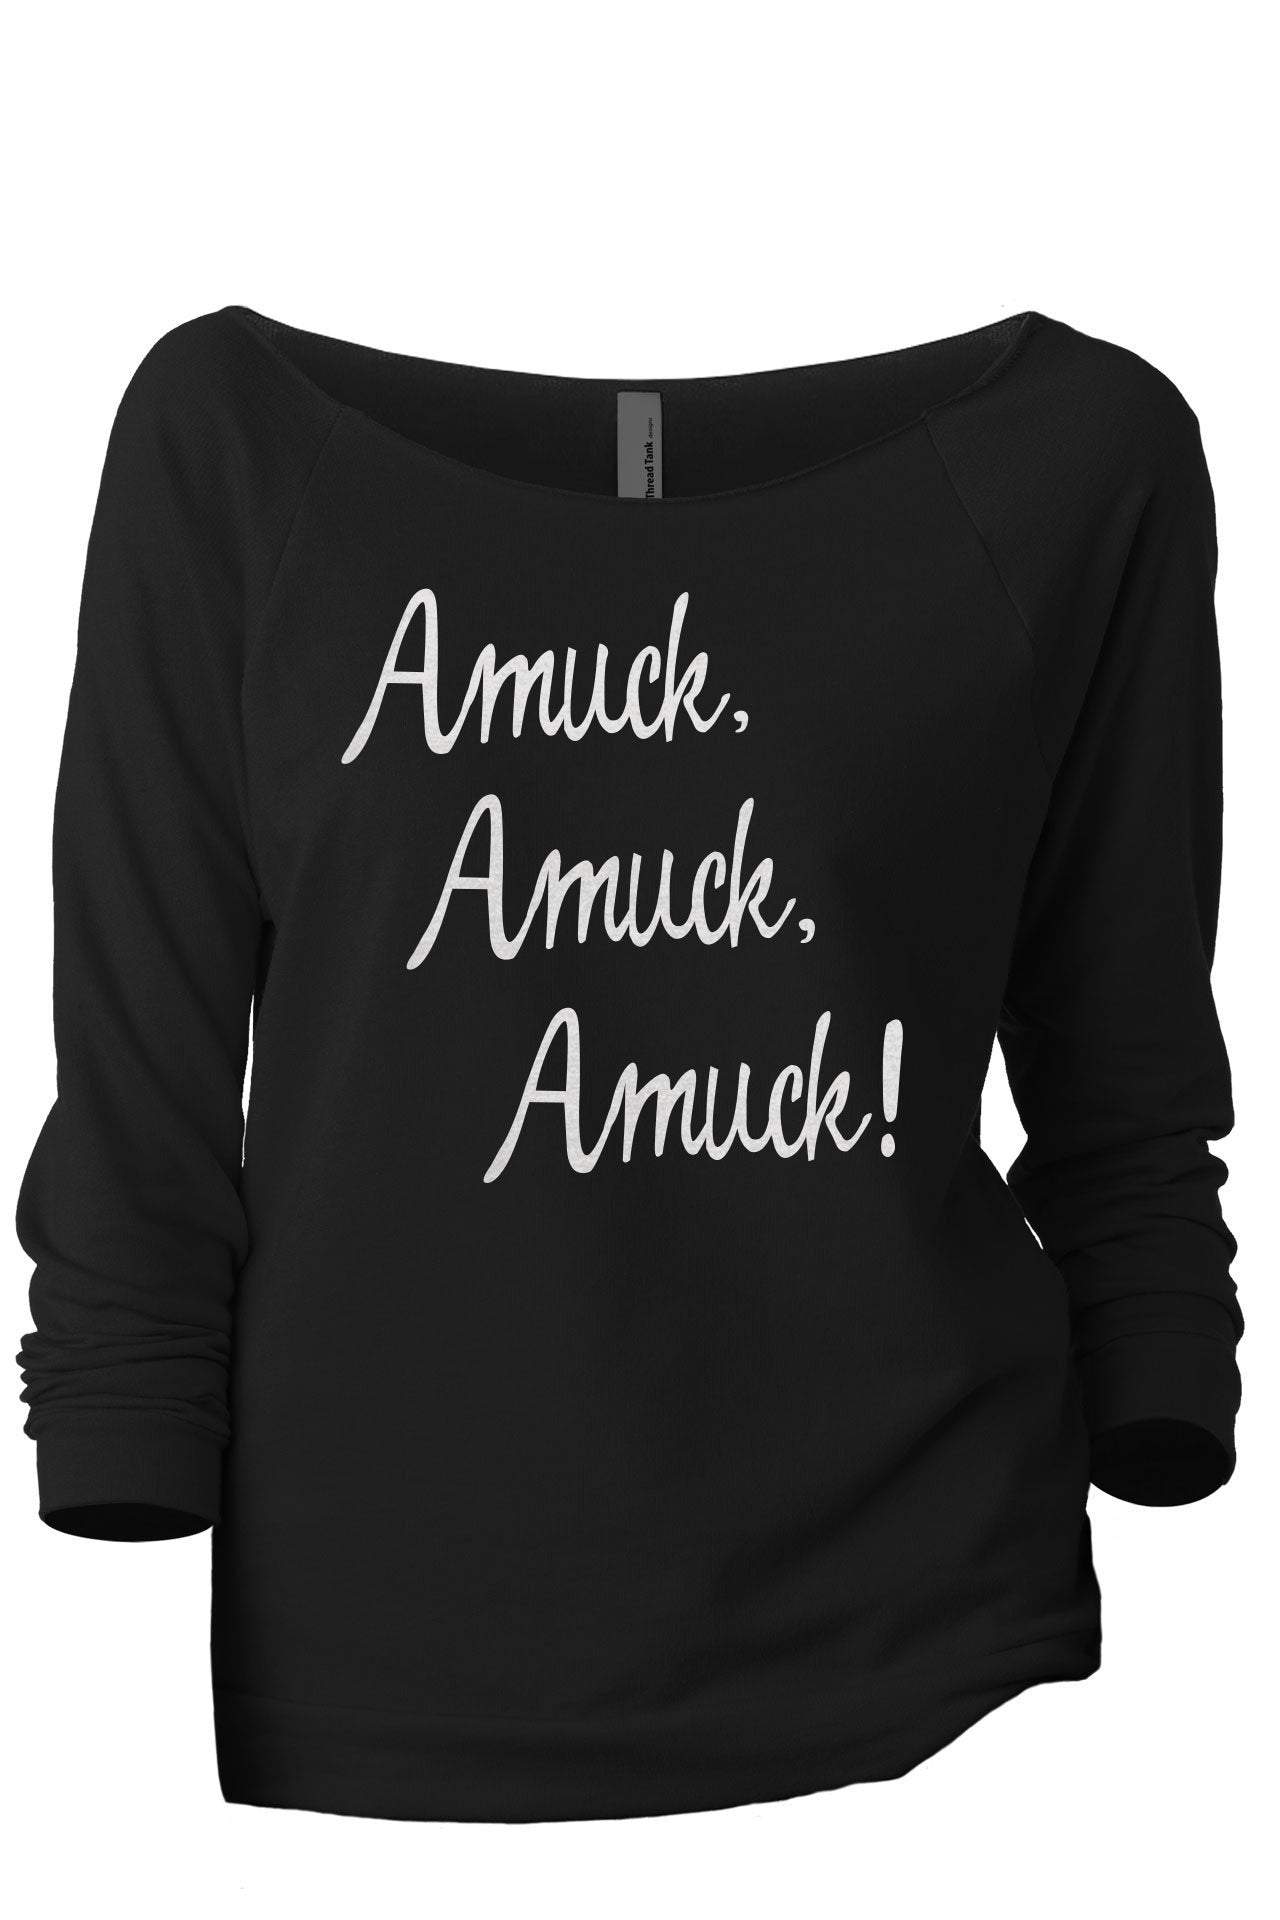 Amuck Amuck Women's Graphic Printed Lightweight Slouchy 3/4 Sleeves Sweatshirt Black